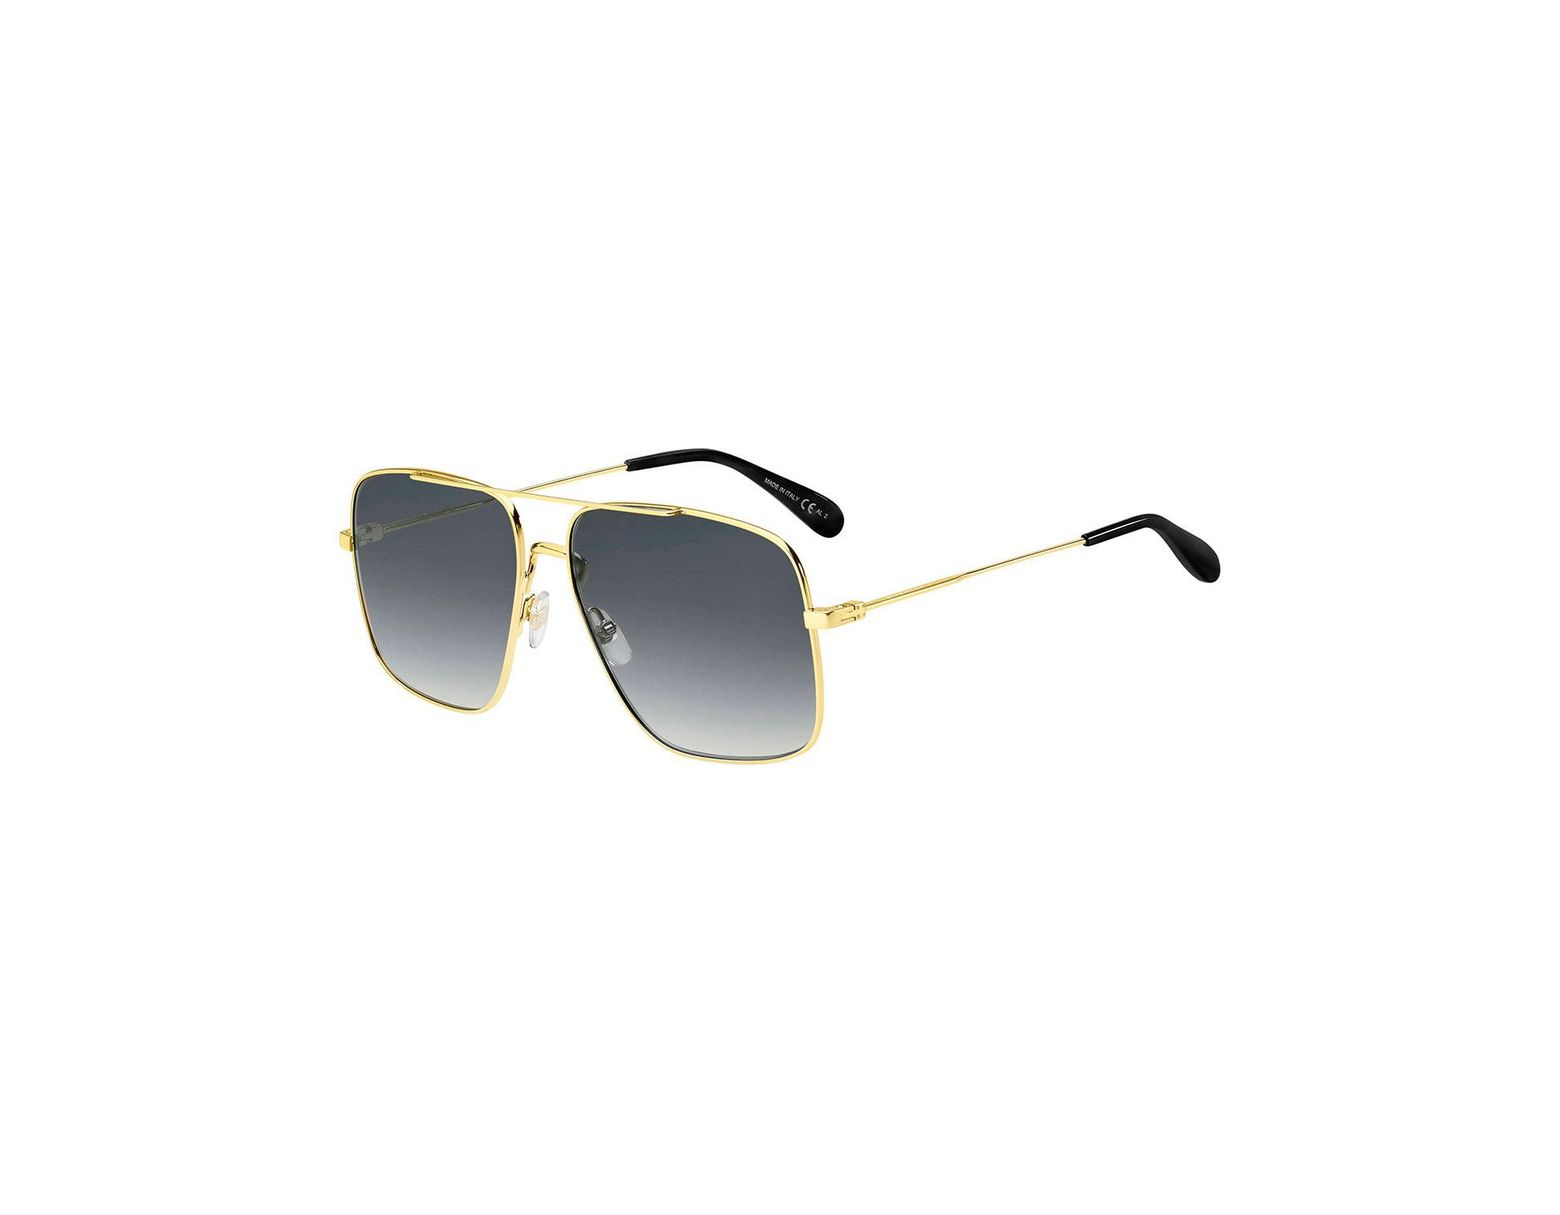 3bf6f6d3d Givenchy Men's Metal Aviator Sunglasses in Metallic for Men - Lyst